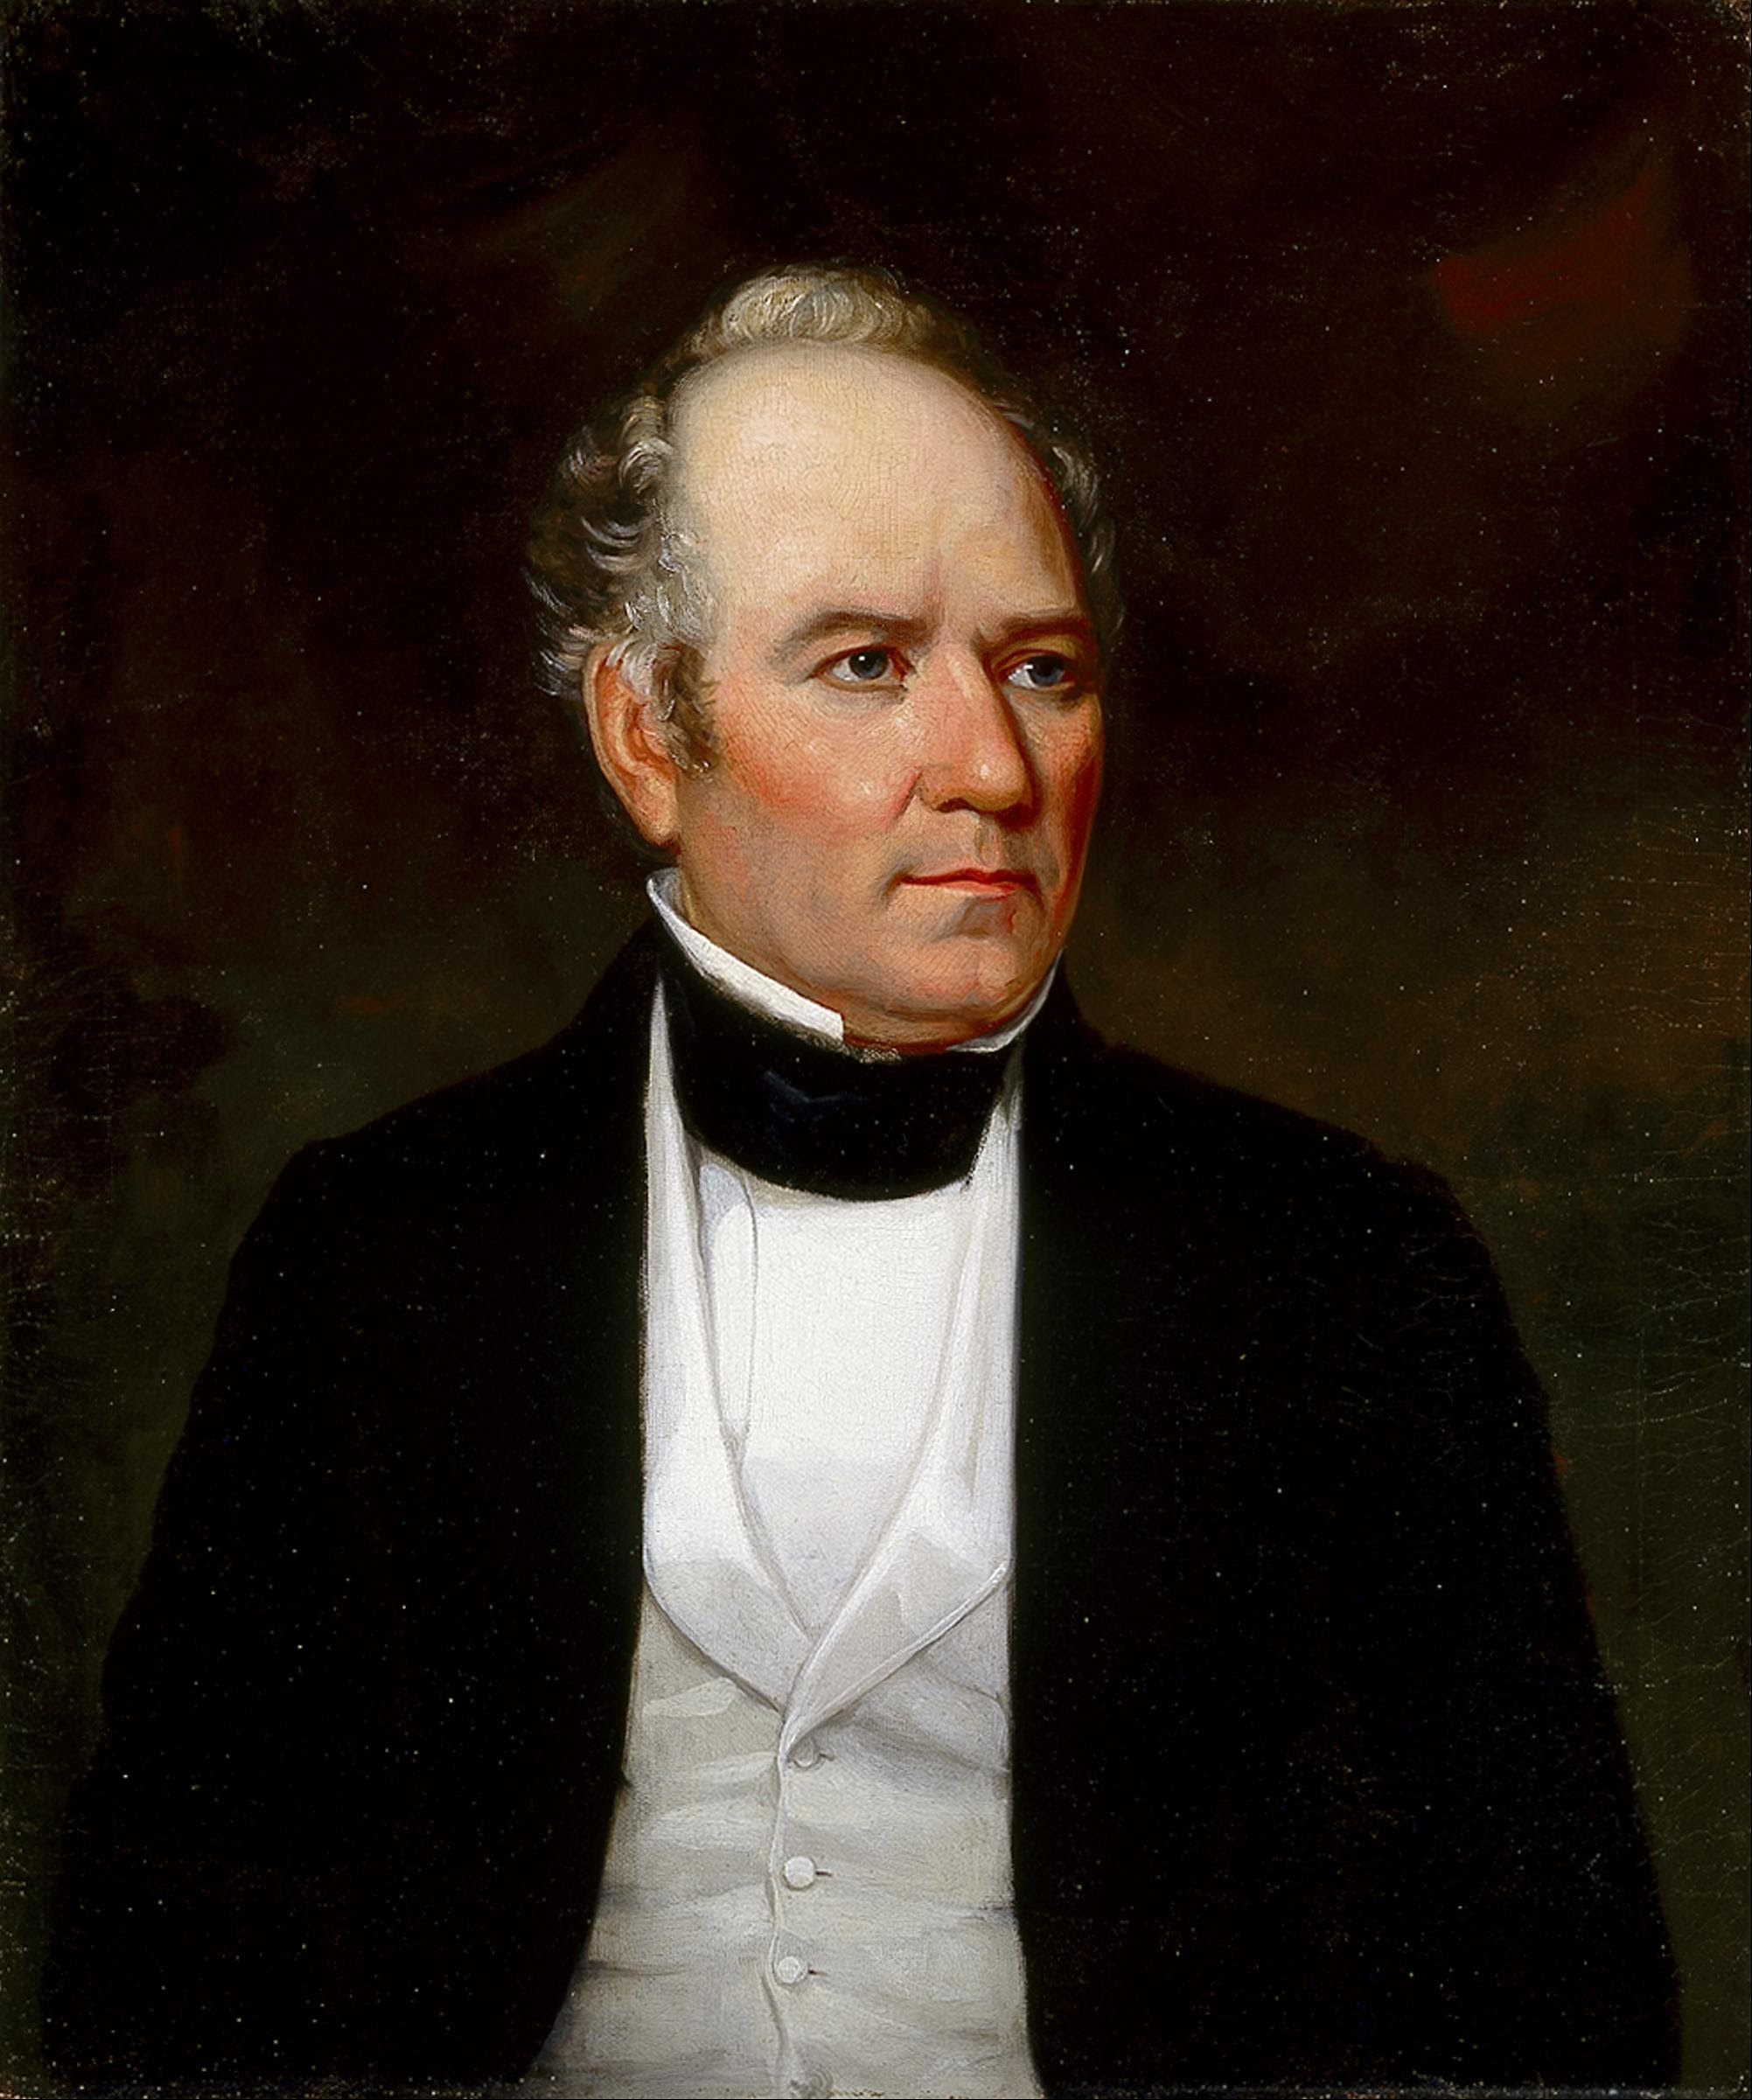 the life and career of sam houston Sam houston (1793-1863) a his involvement in the war of 1812 launched houston's political career this portion of houston's life is poorly documented.